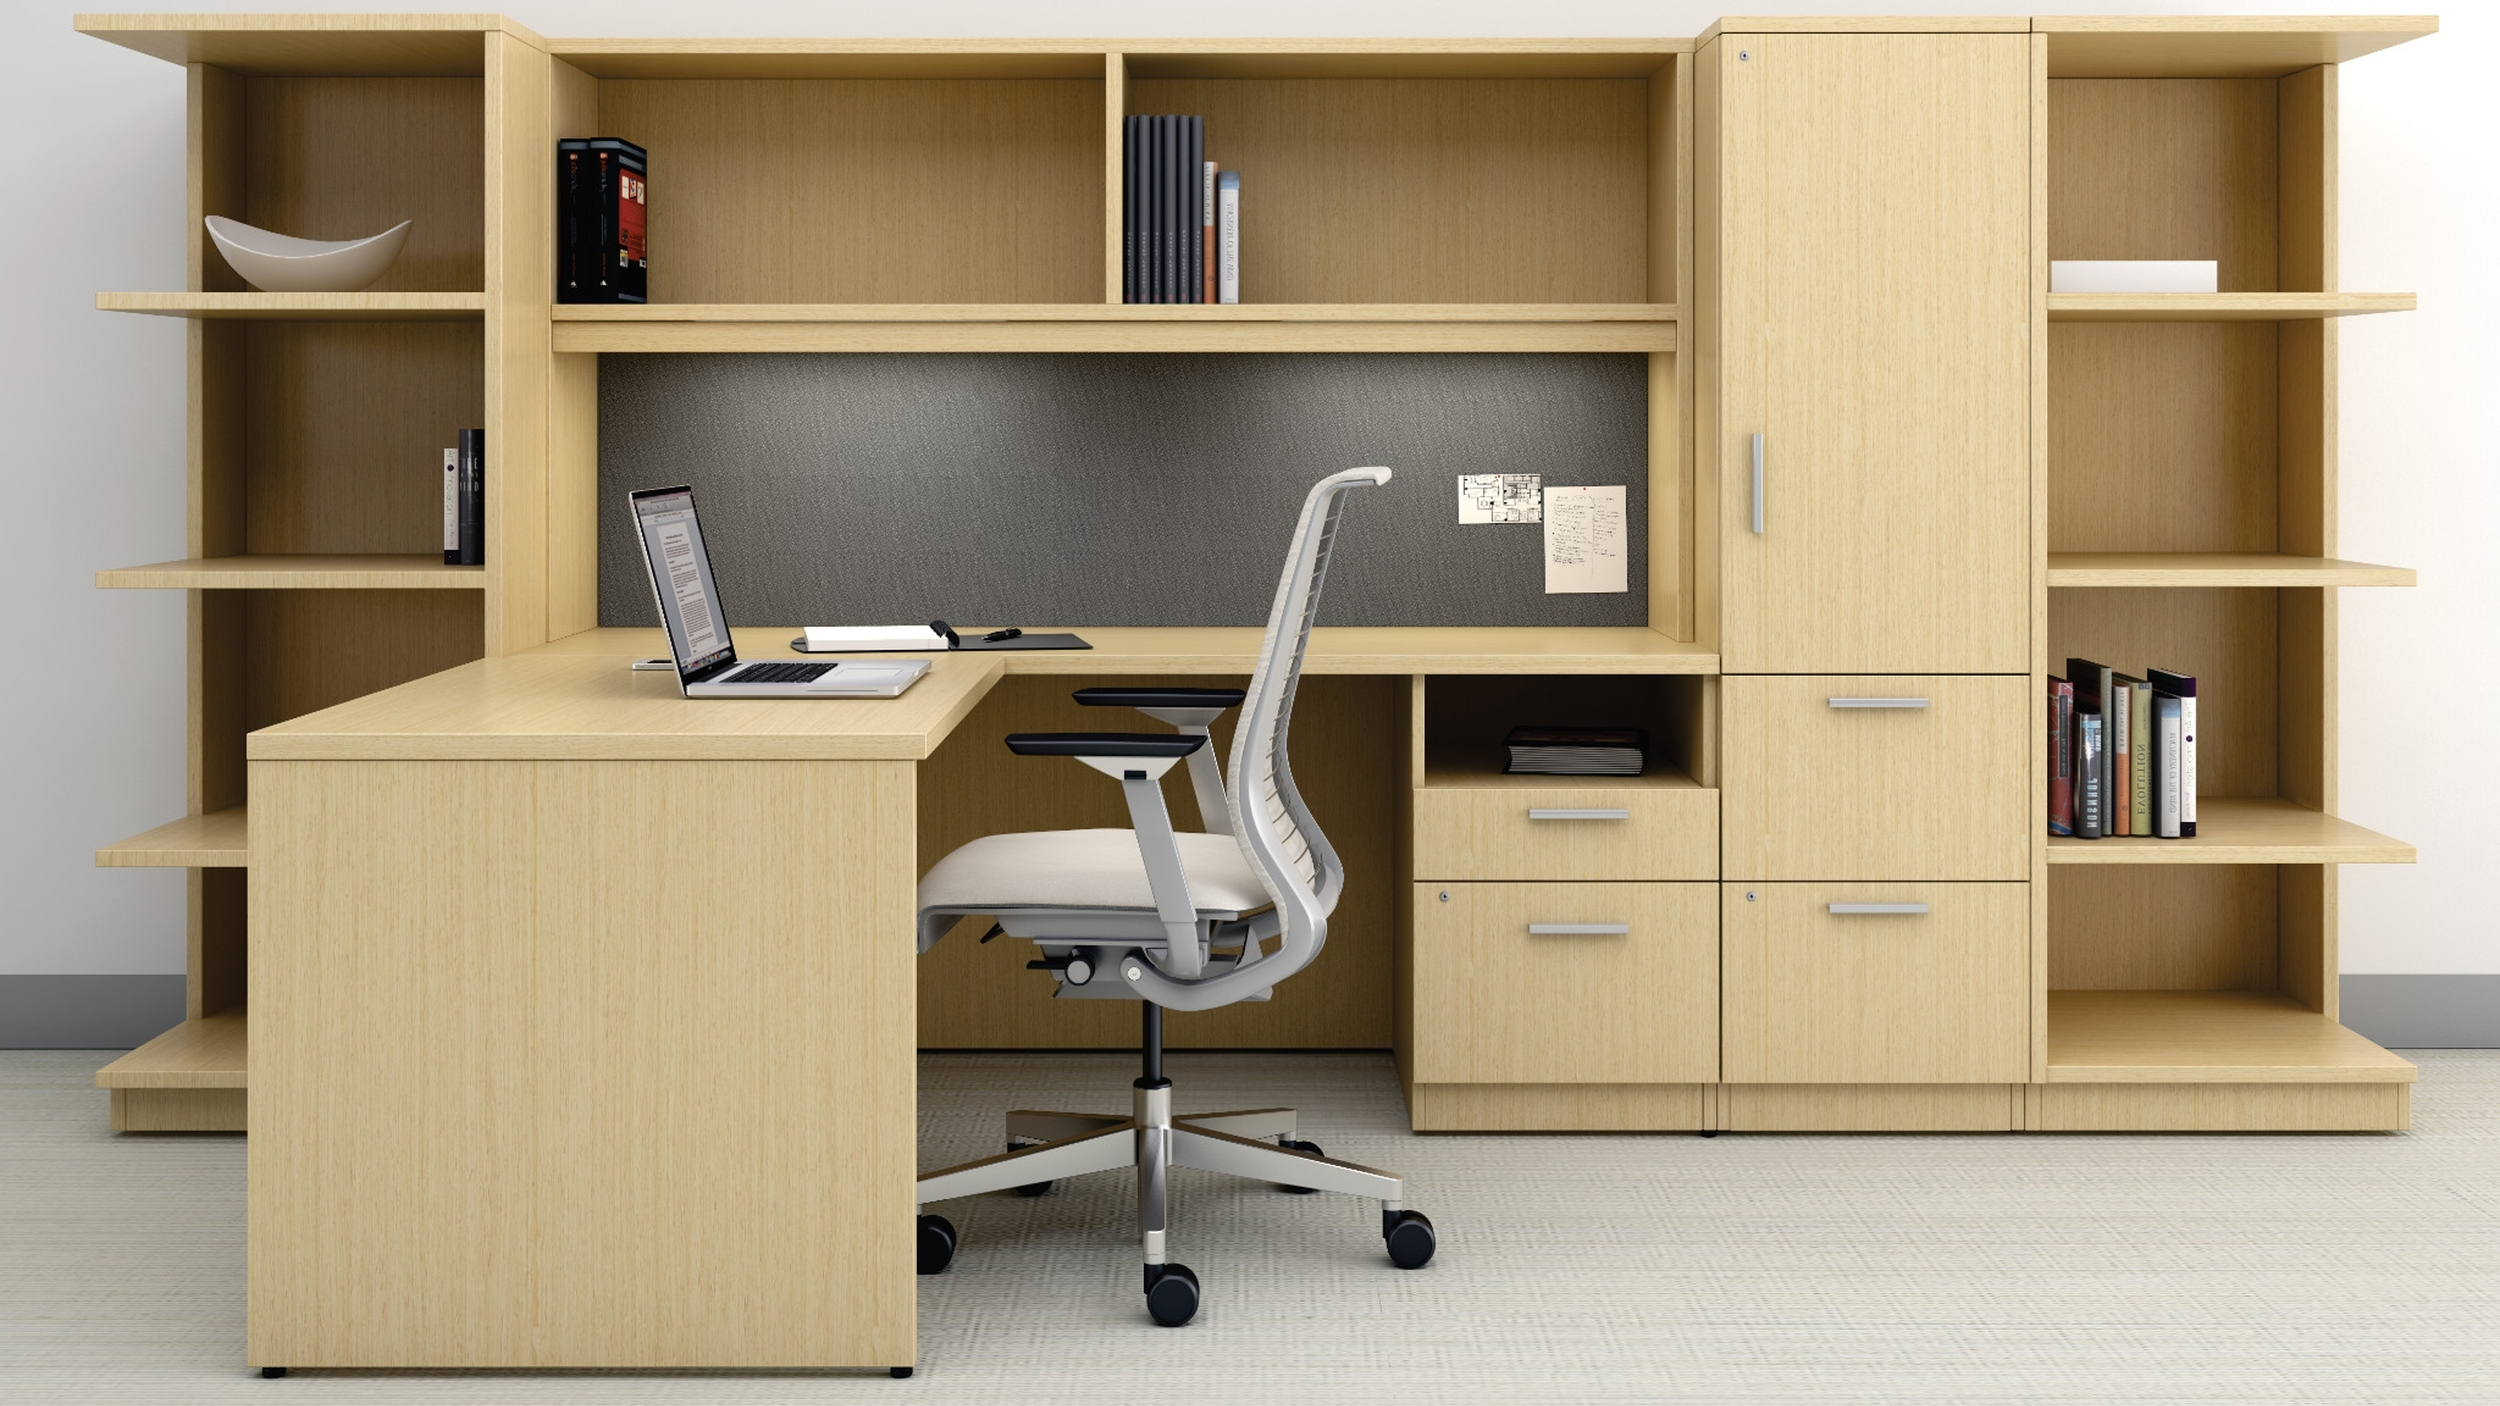 Steelcase - Payback